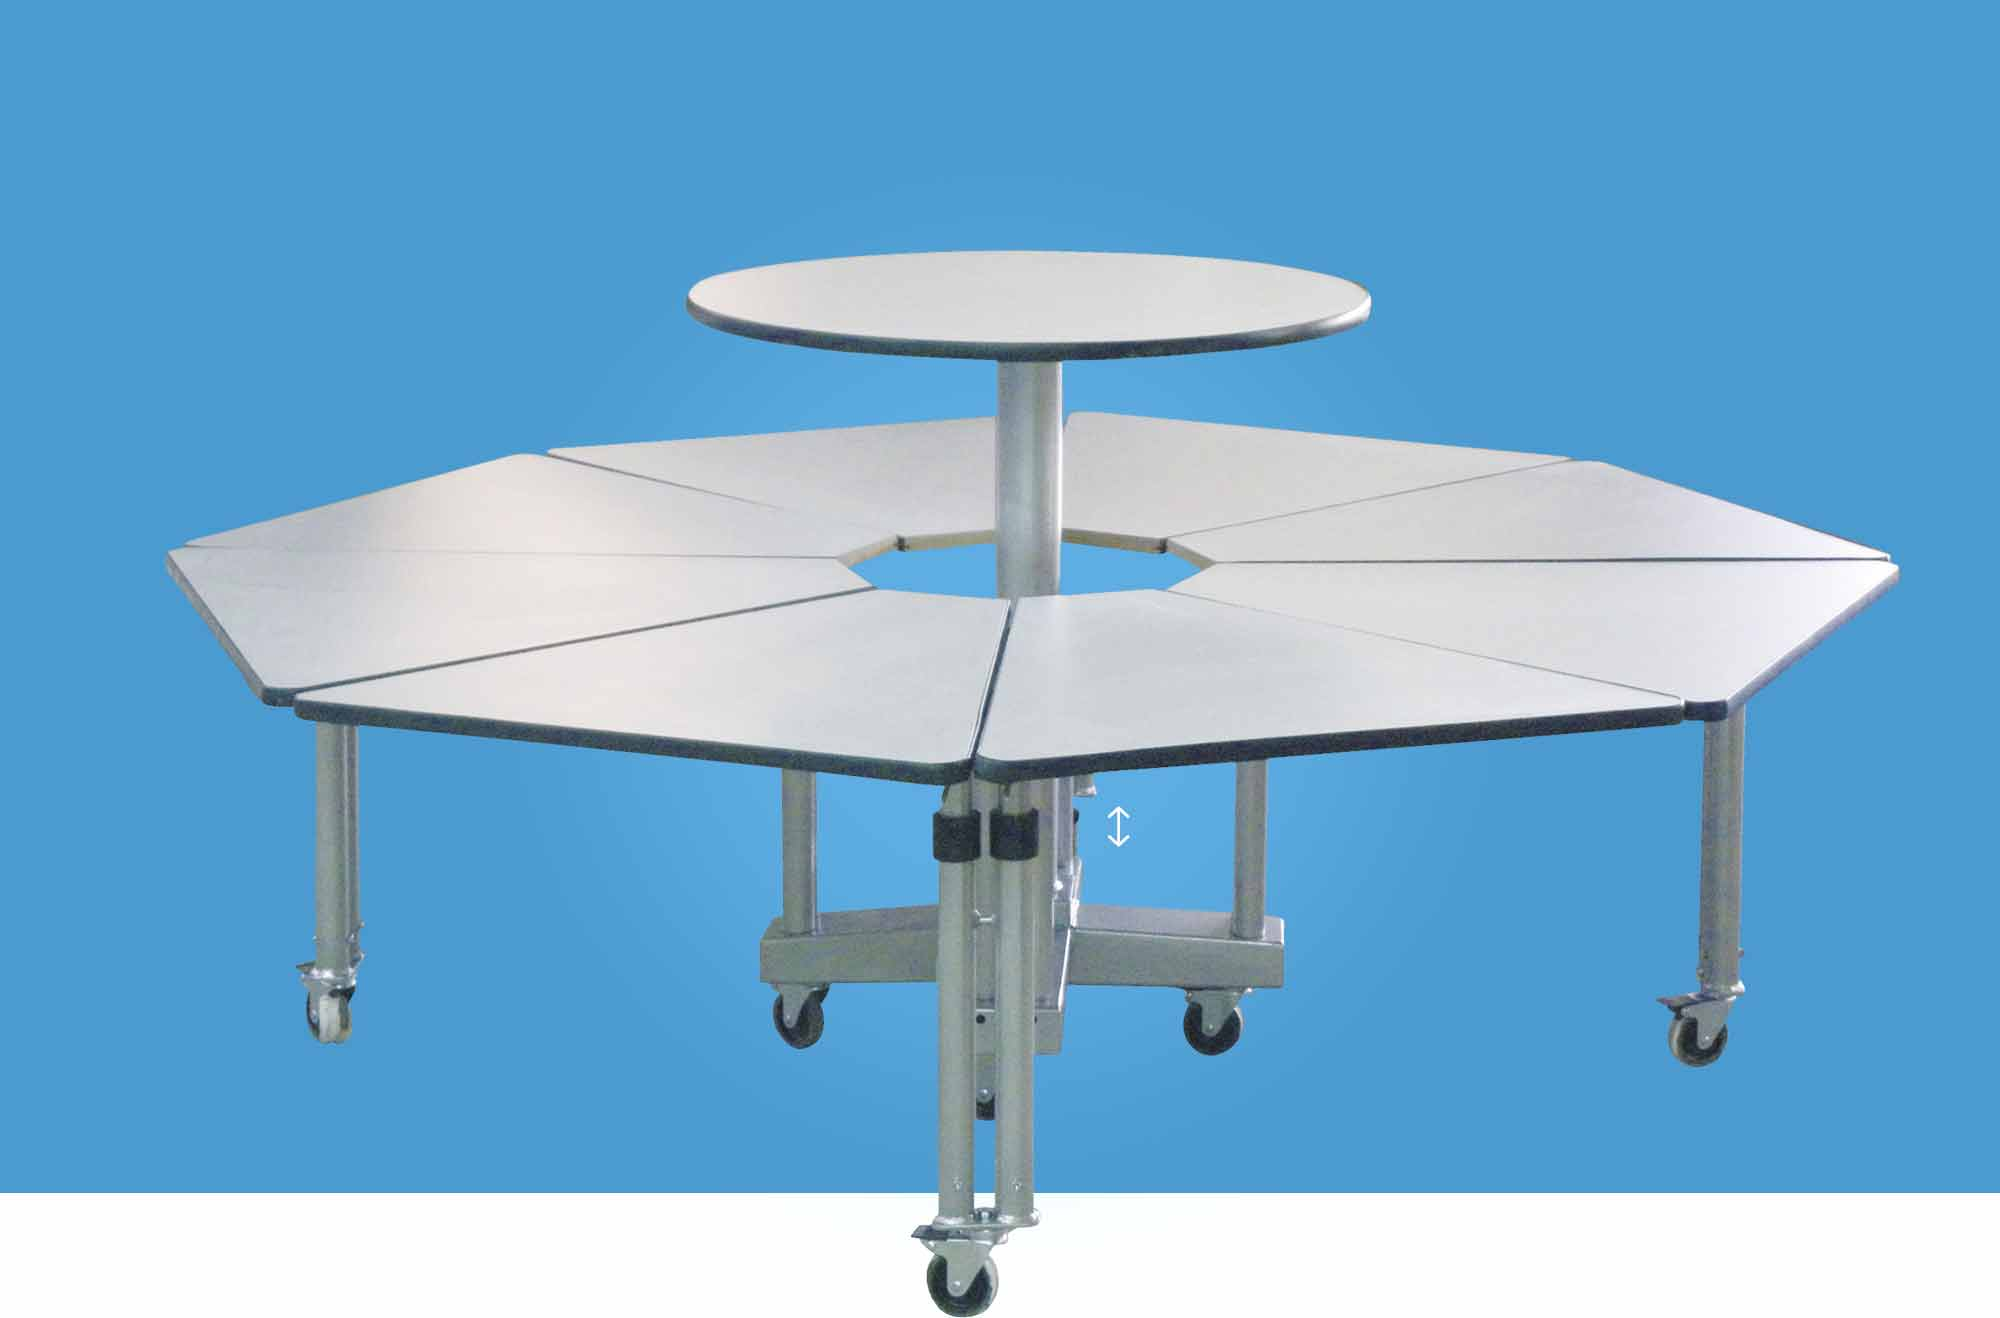 Hephaïstos mobilier ergonomique poseidon table mutiple adapté fauteuils roulants